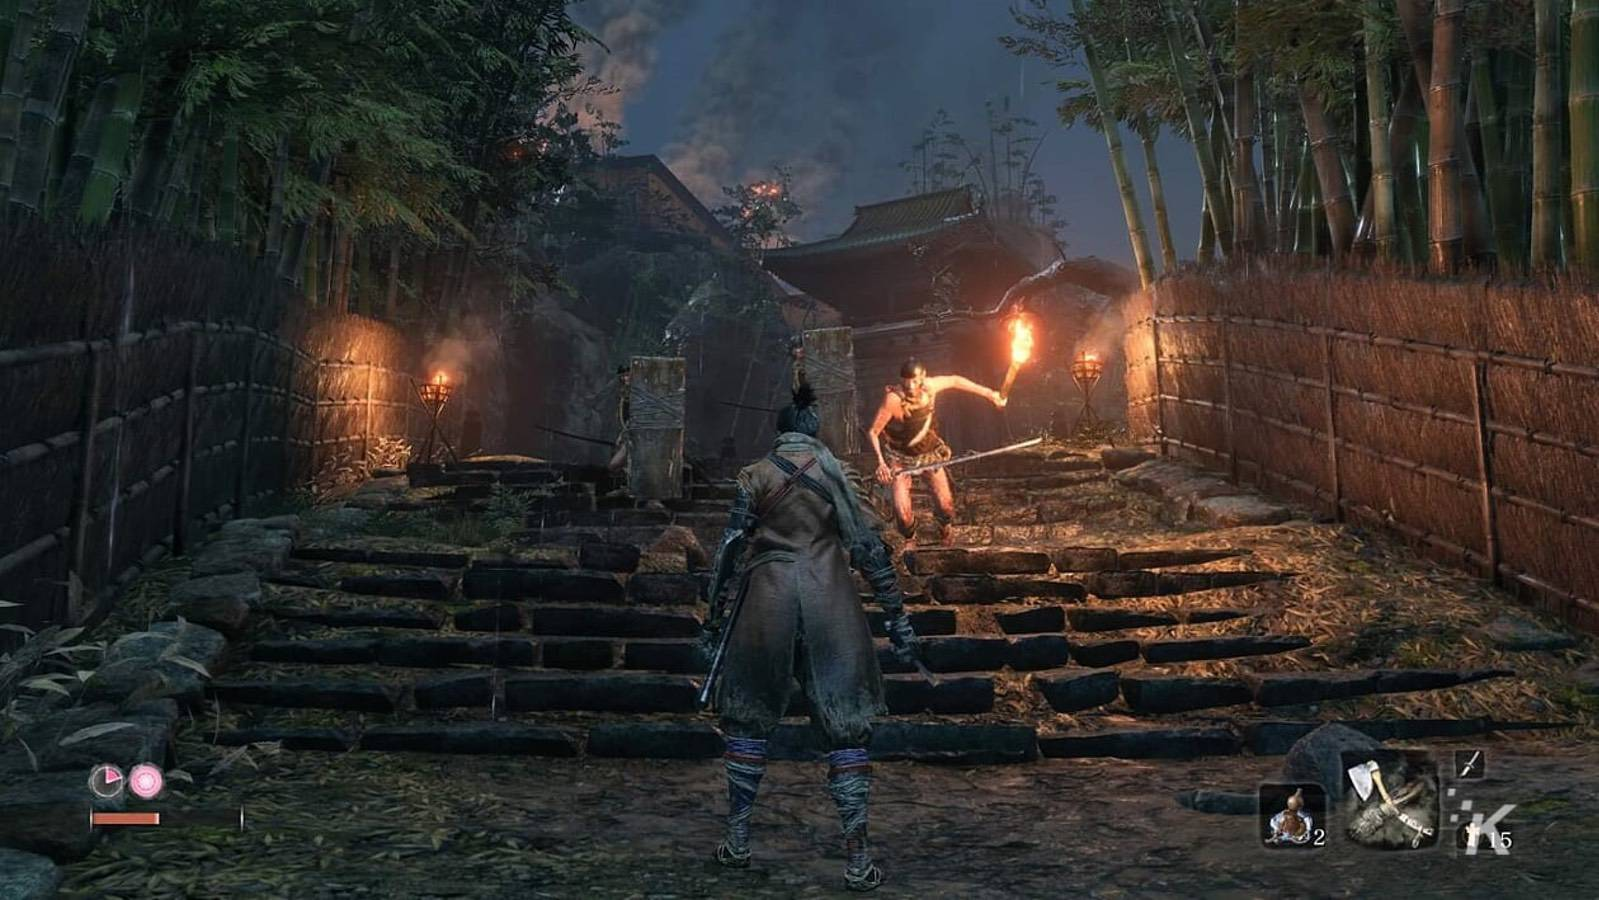 gameplay on steps